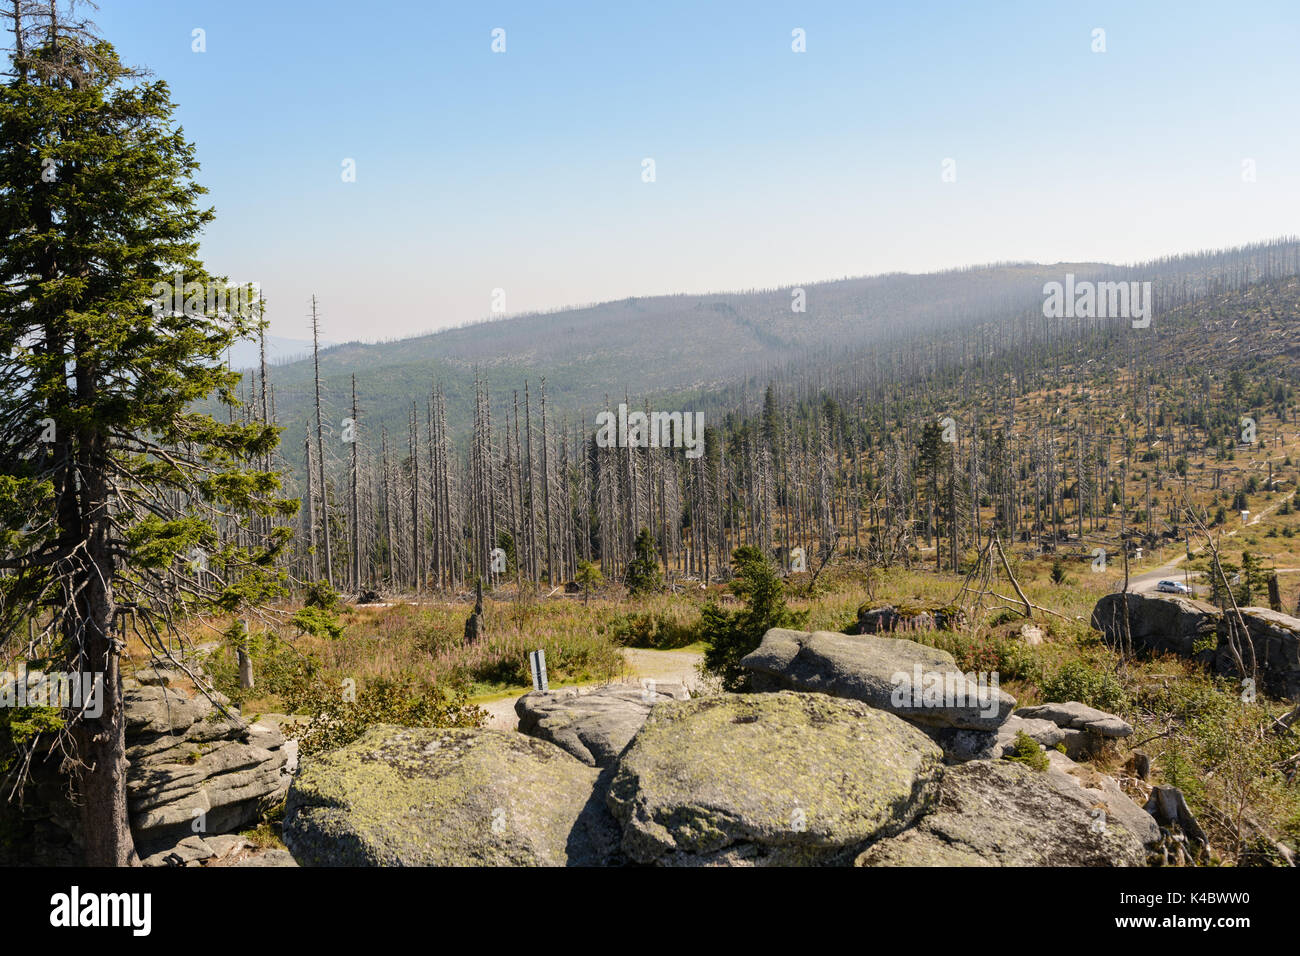 Death Of The Forests As A Result Of Pollution At Dreisesselberg, Nature Reserve Stock Photo